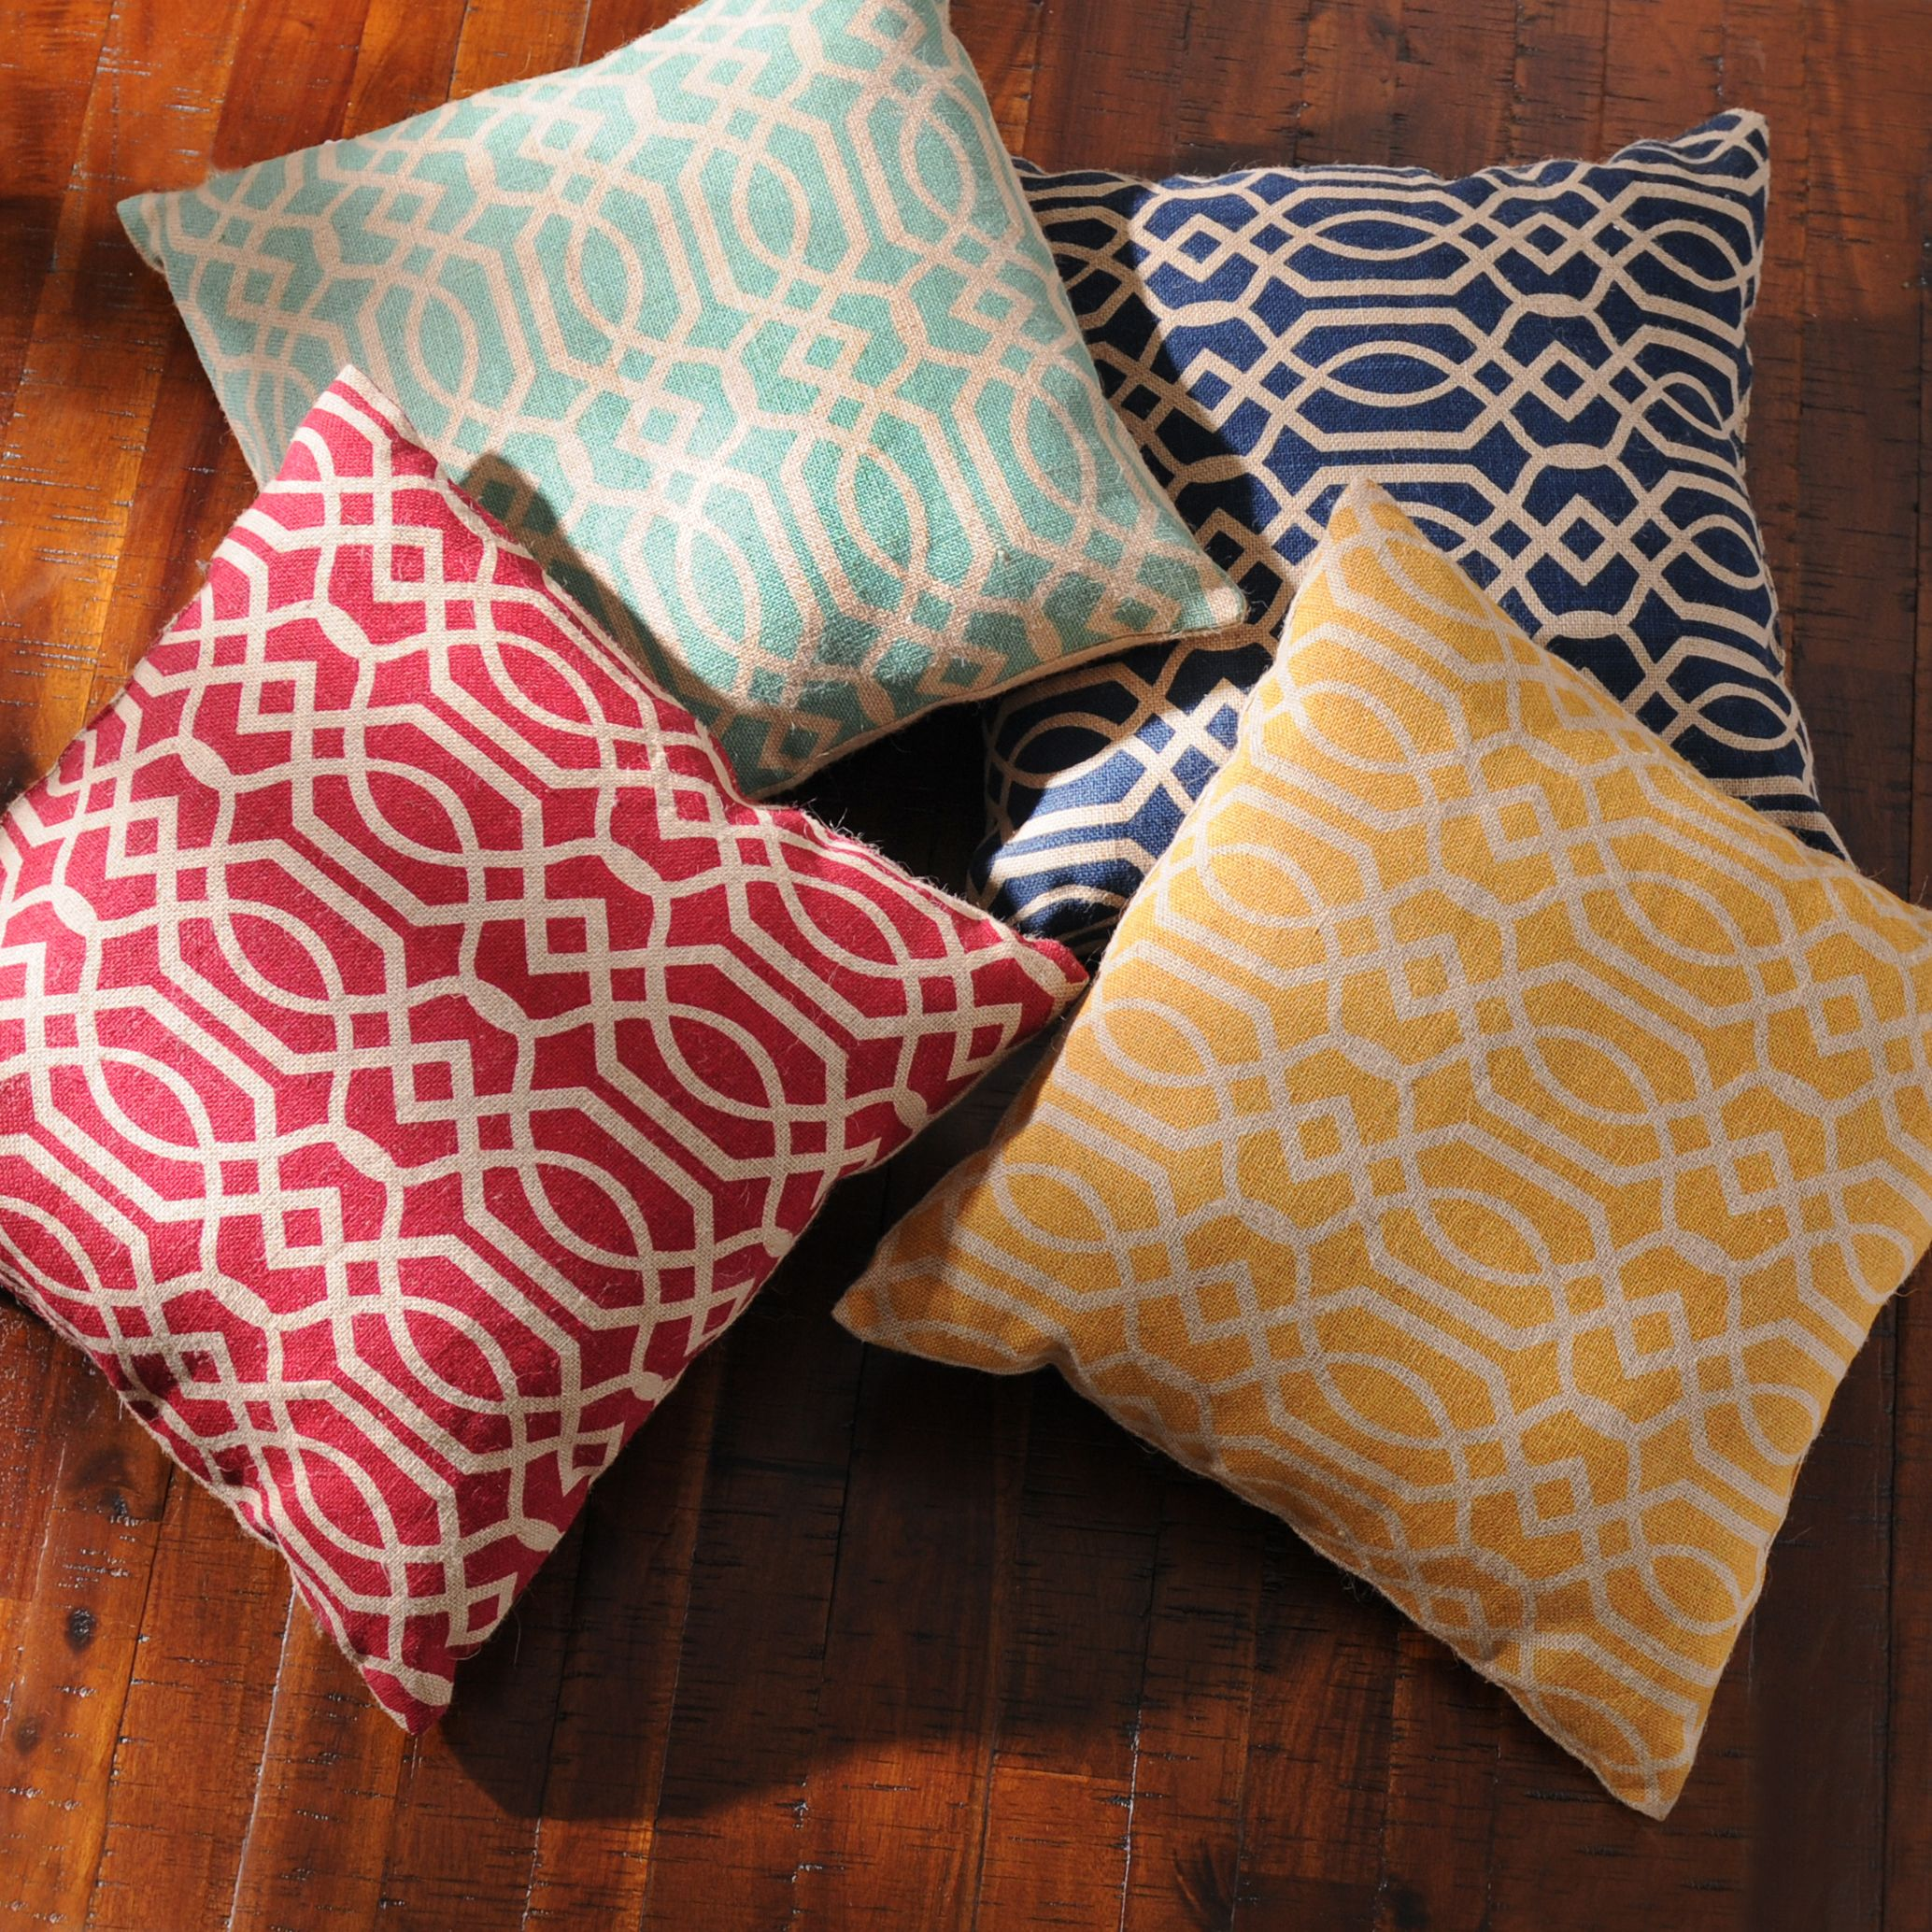 Colorful Pillows Are An Easy And Fun Way To Decorate Your Home! Add A Pop